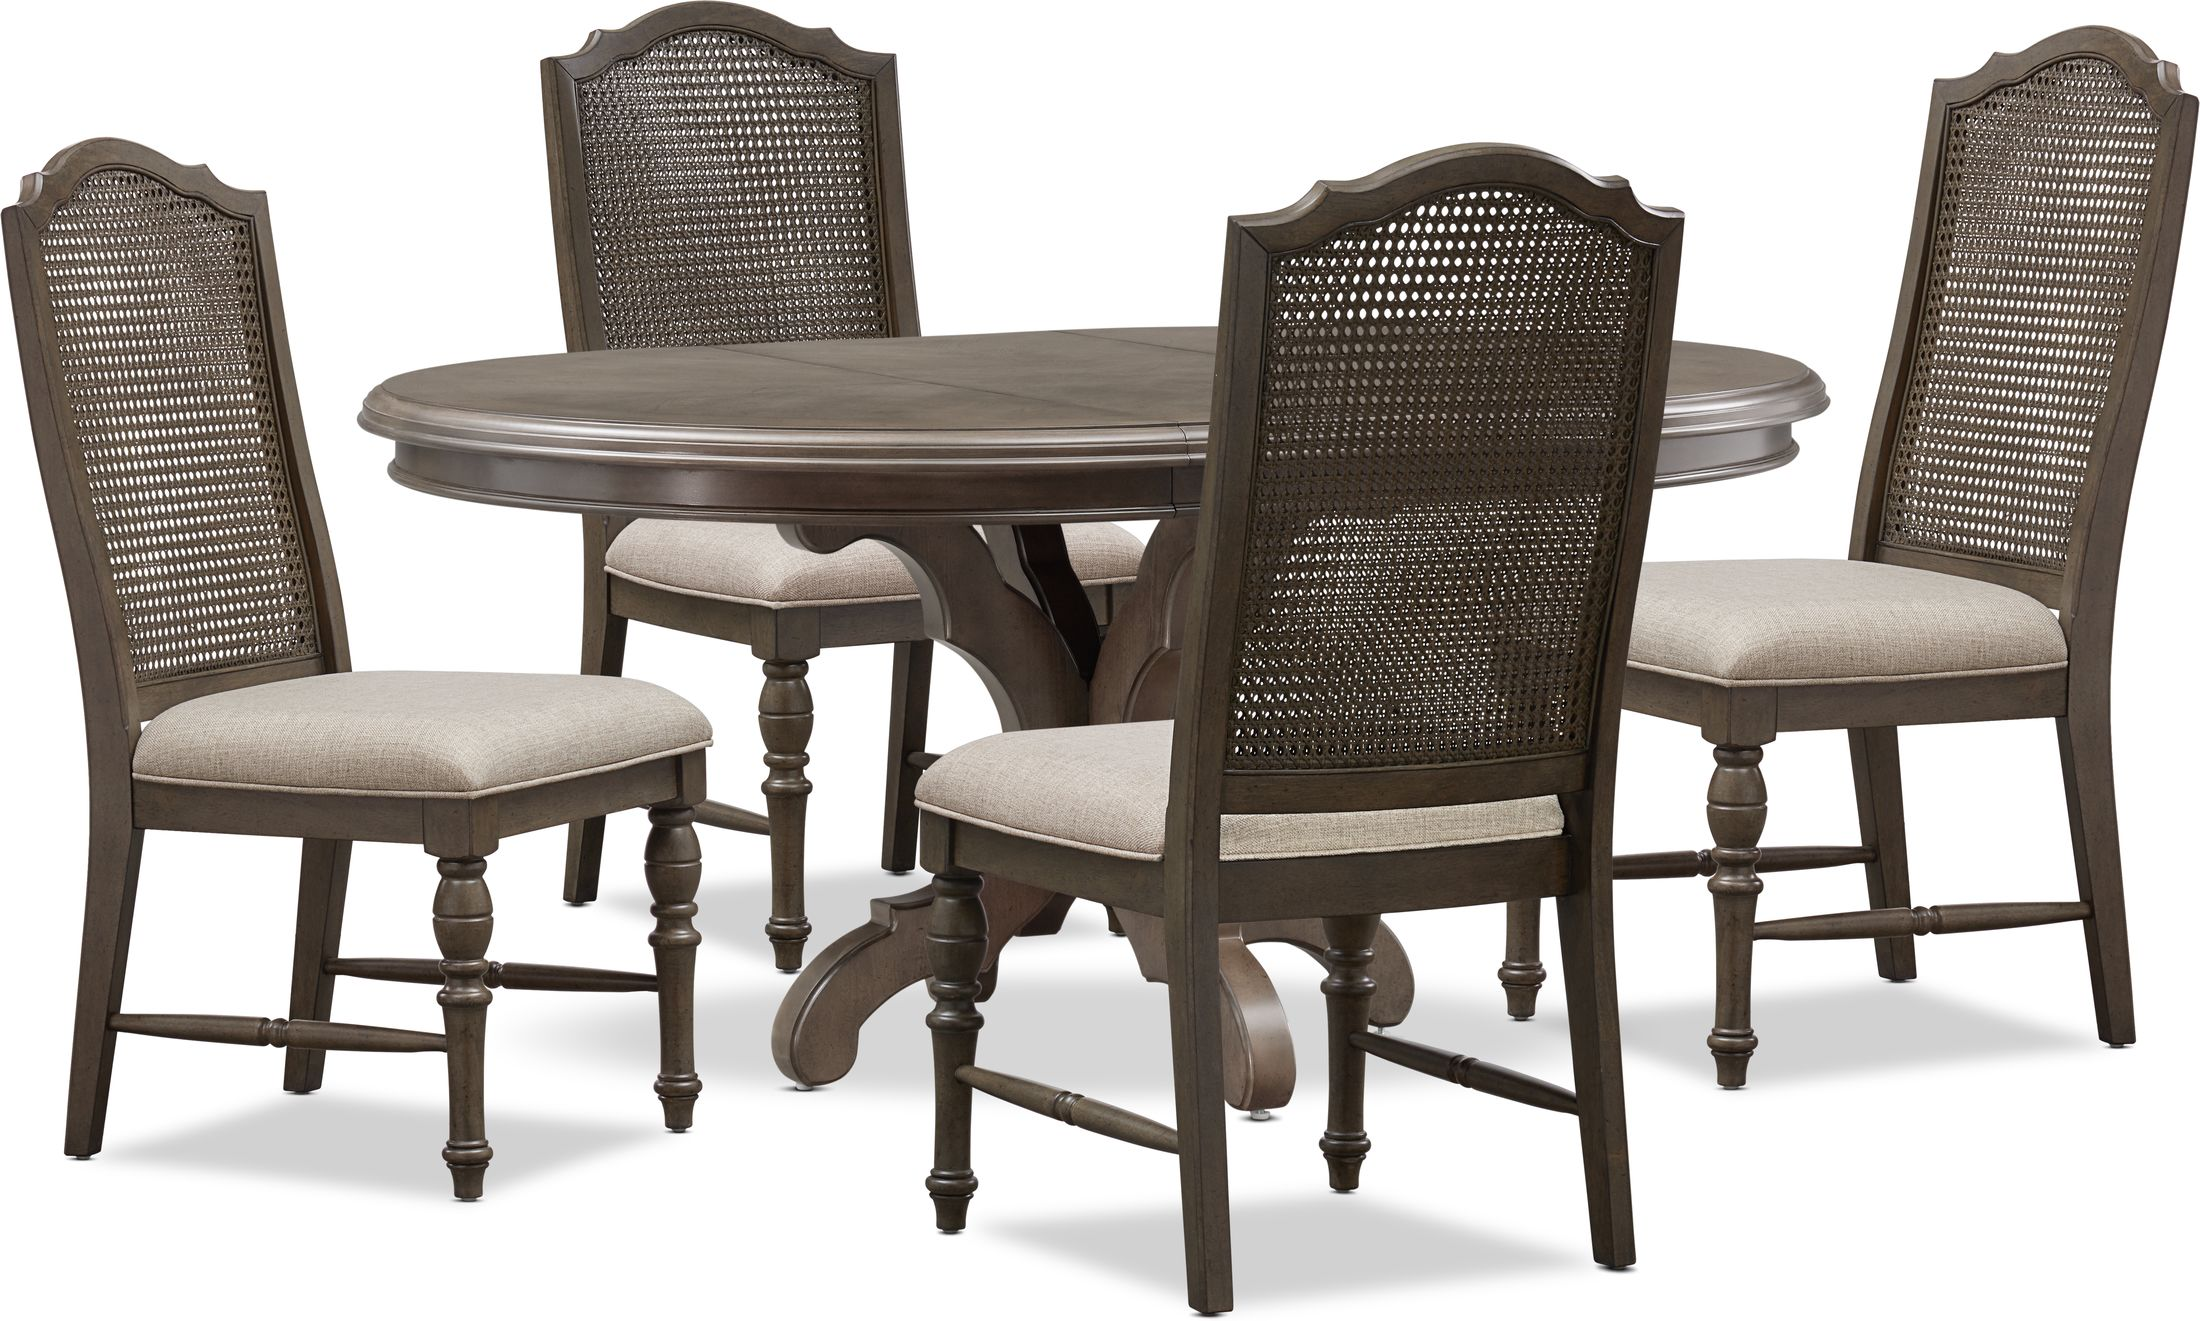 Dining Room Furniture - Charleston Round Dining Table and 4 Cane Back Dining Chairs